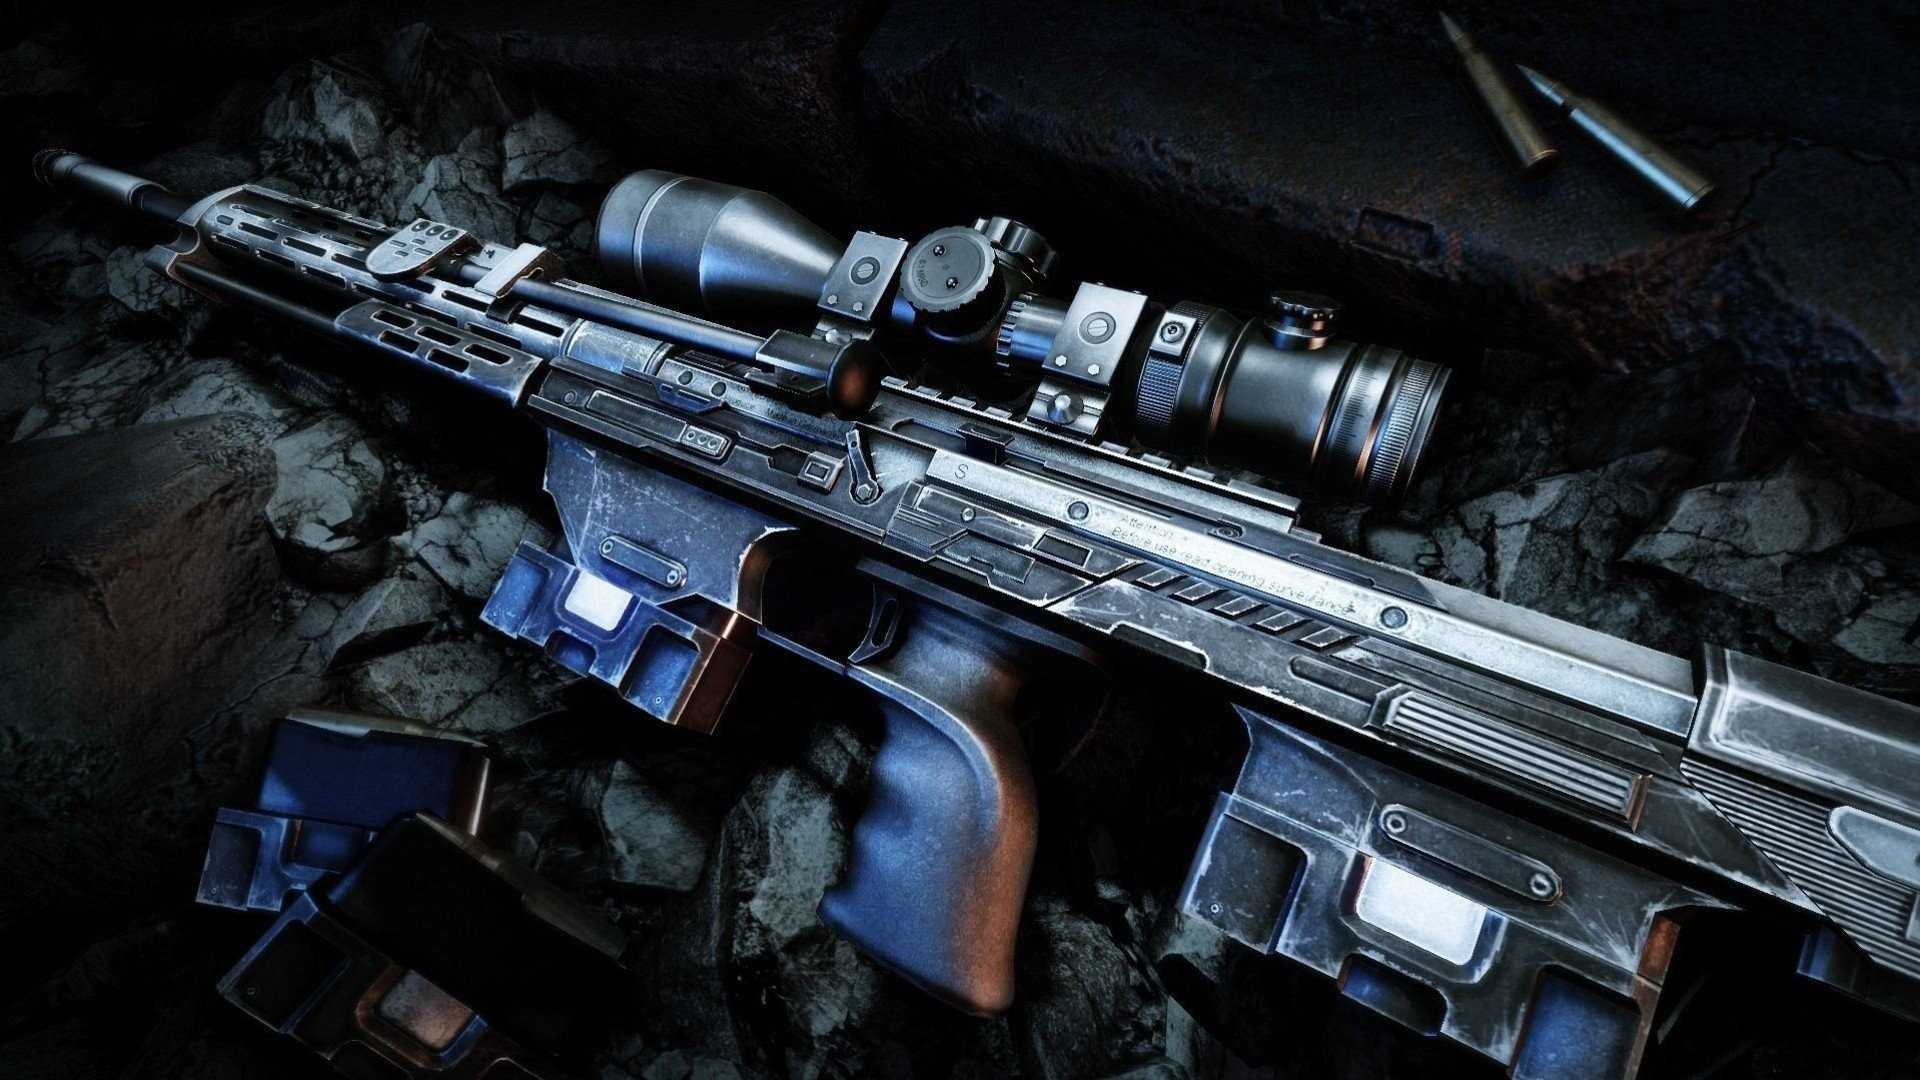 1920x1080 3d Cool Rifle Wallpaper Hd Android